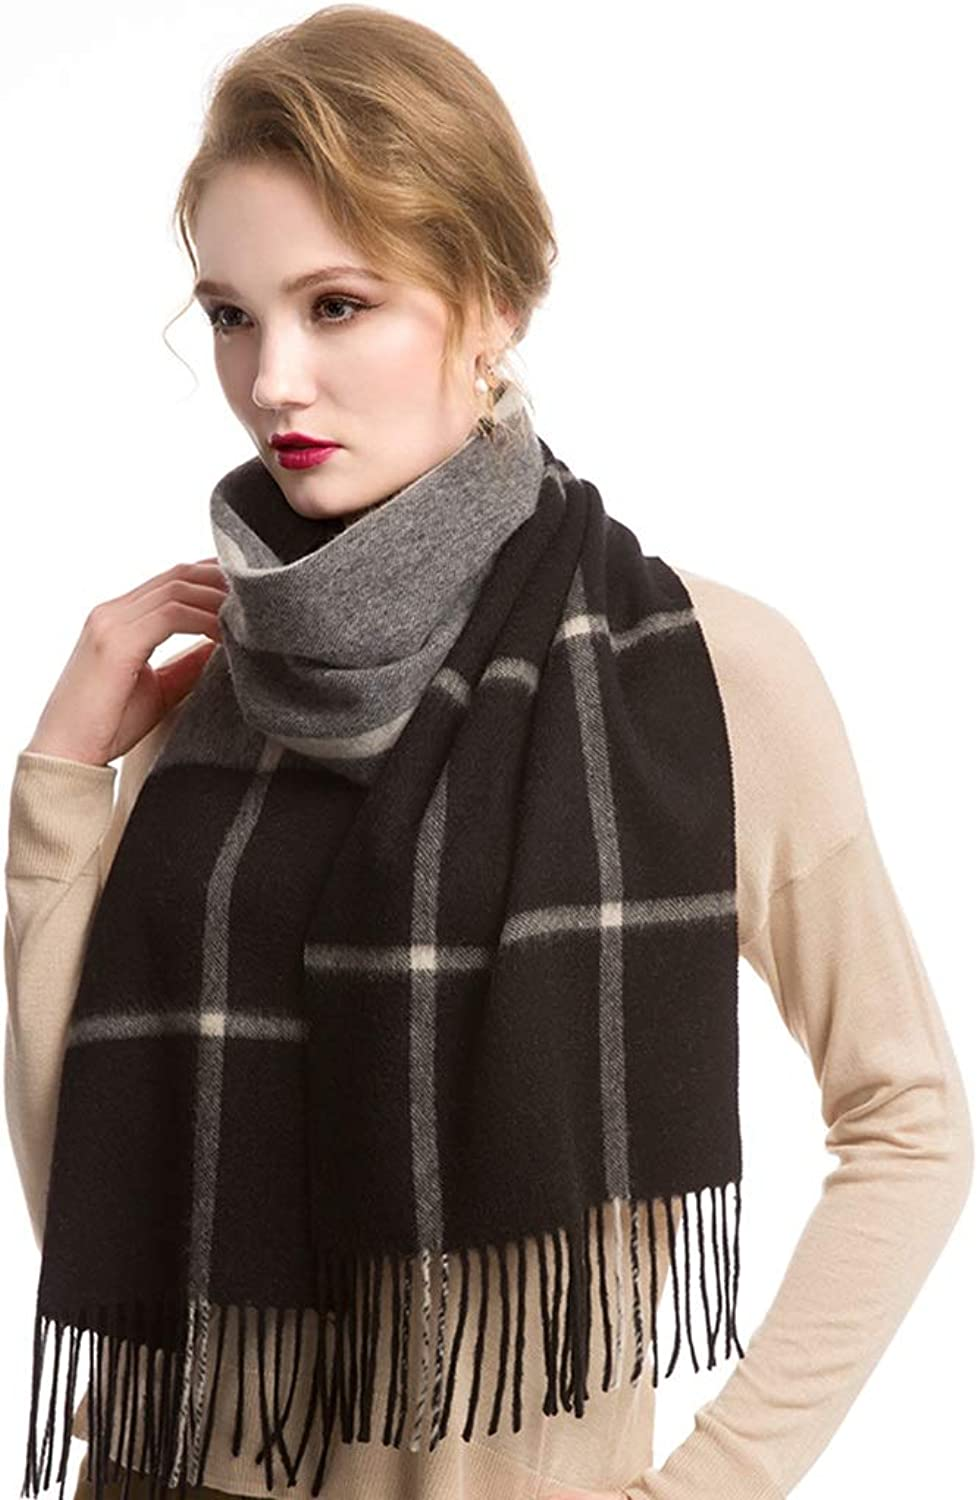 Cold Weather Scarves Women's Long Scarf Cashmere Plaid Scarf Ladies Soft Scarf Wrapped Tassel Shawl Winter Classic Wild Scarf Ladies Gift Wraps (color   Black, Size   190  30cm)